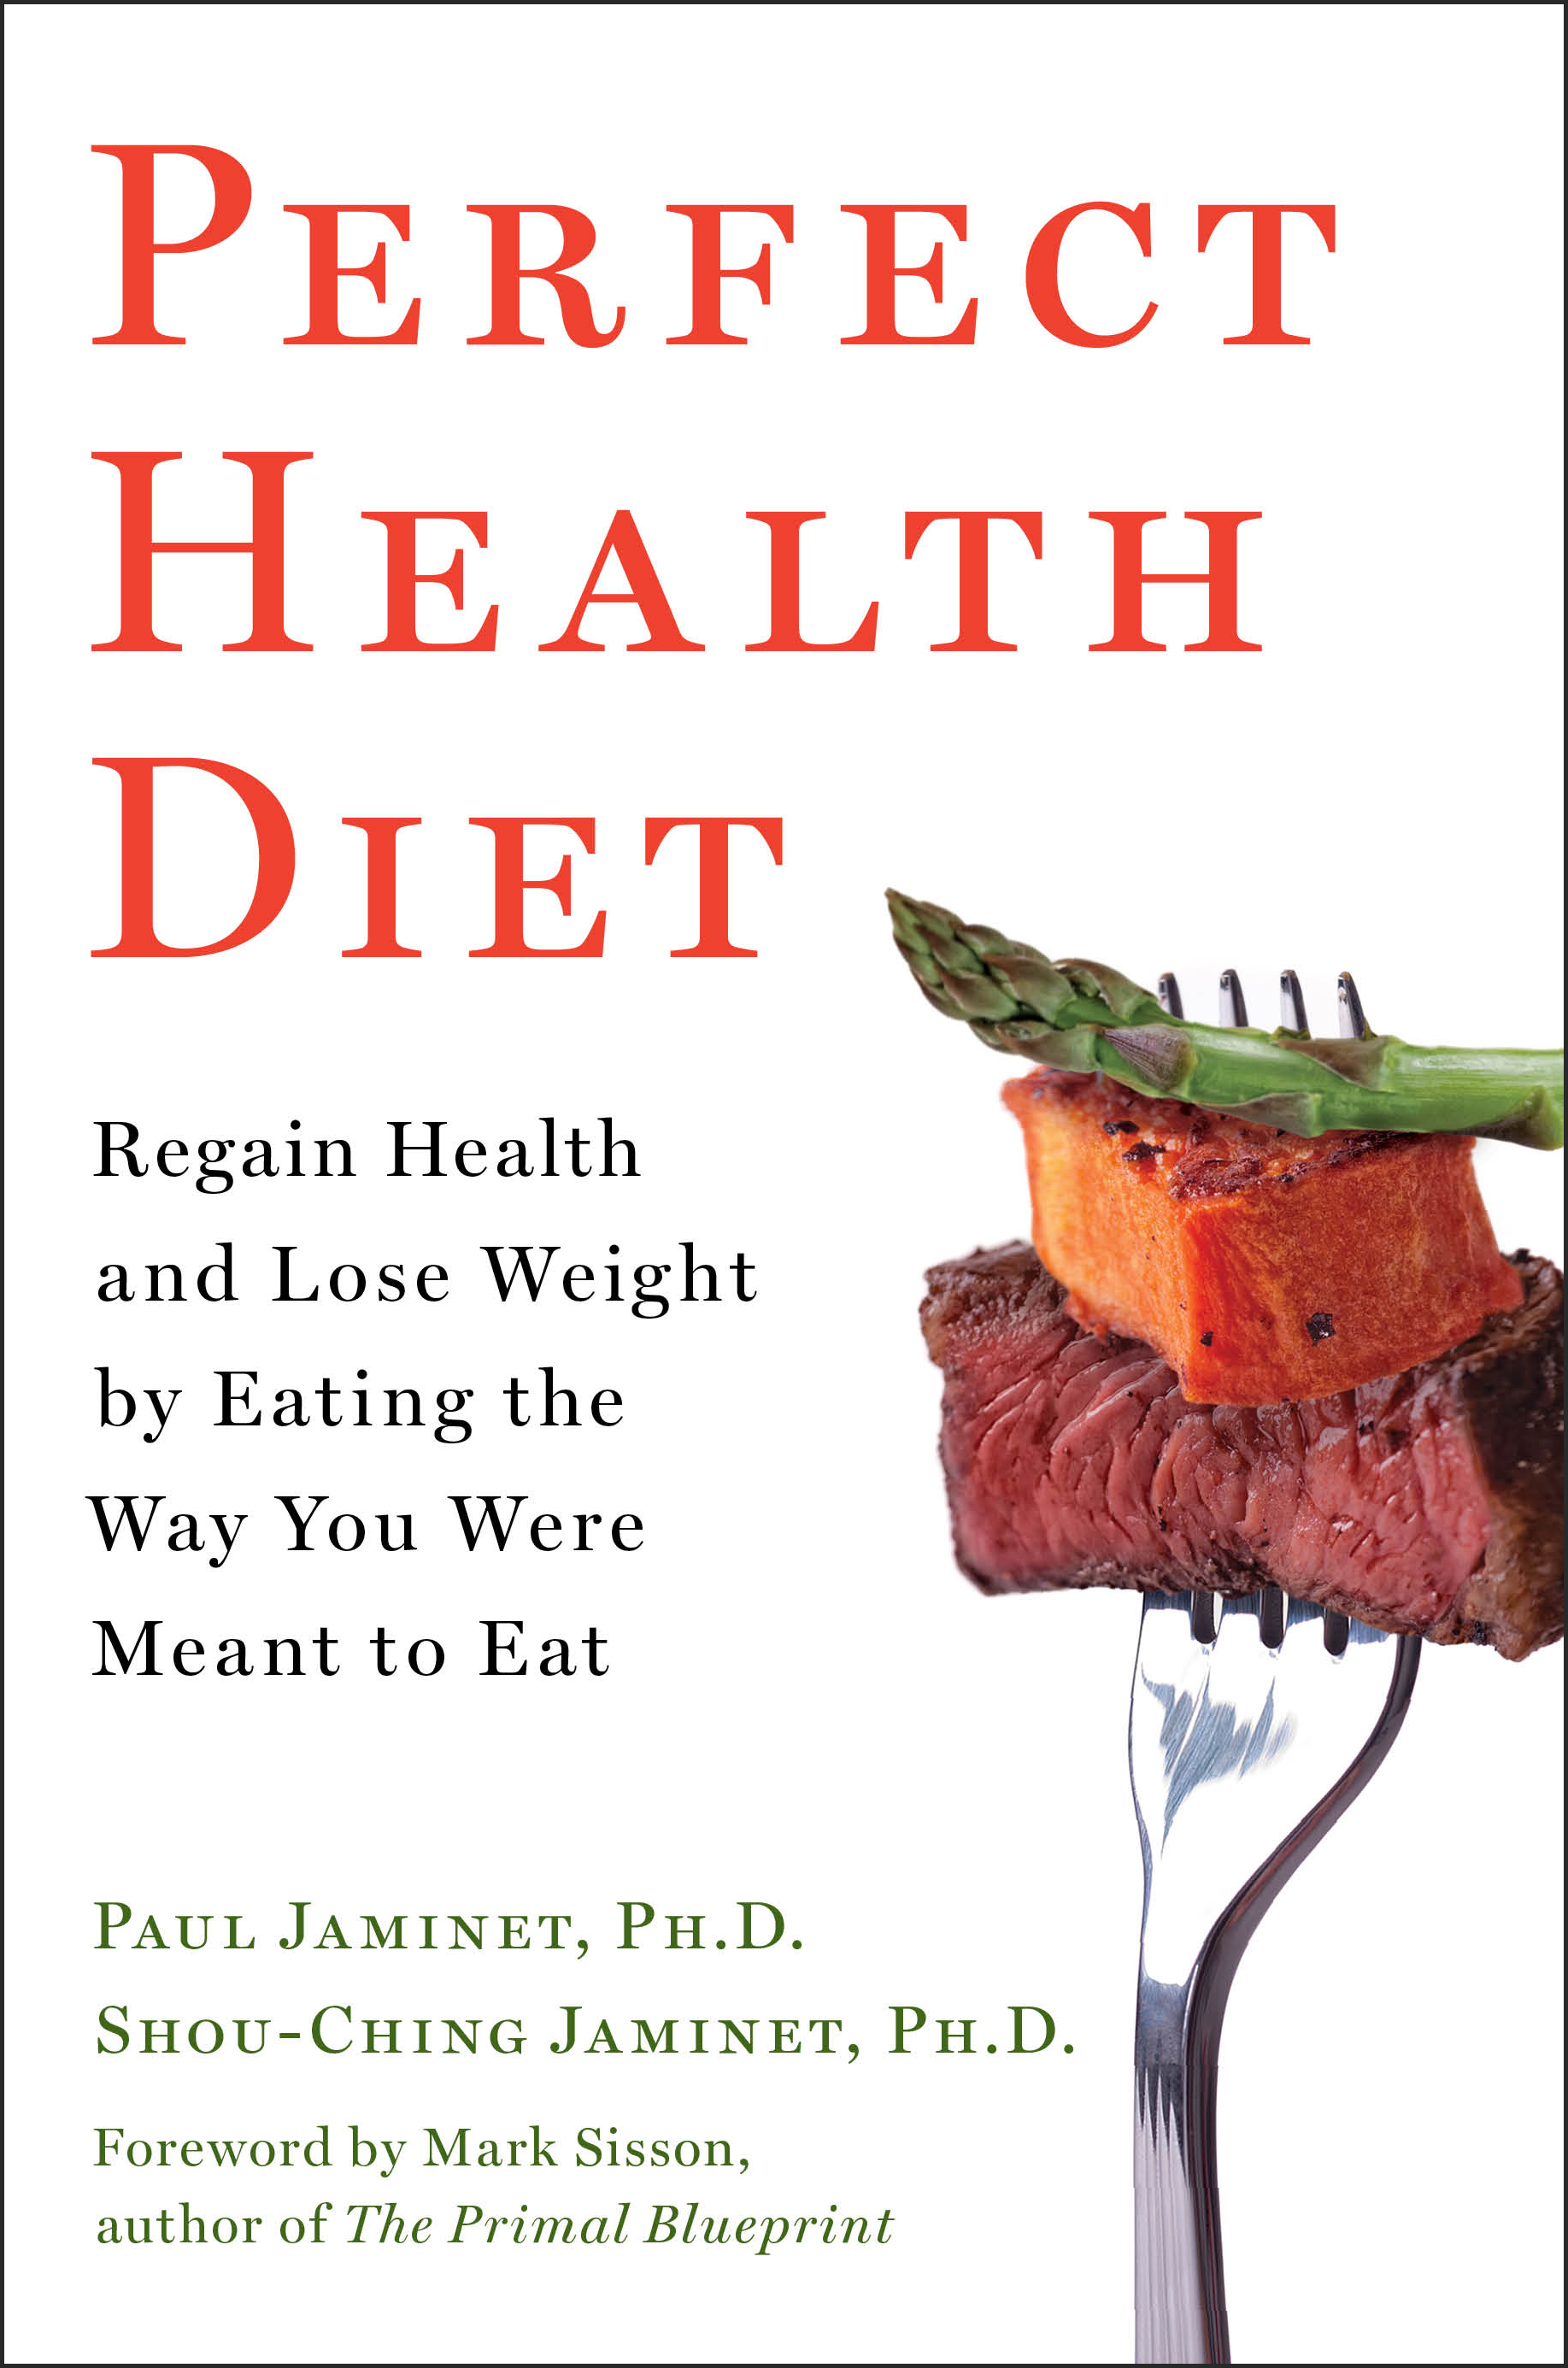 Mark Sisson Diet perfect health diet | bookpaul jaminet, shou-ching jaminet